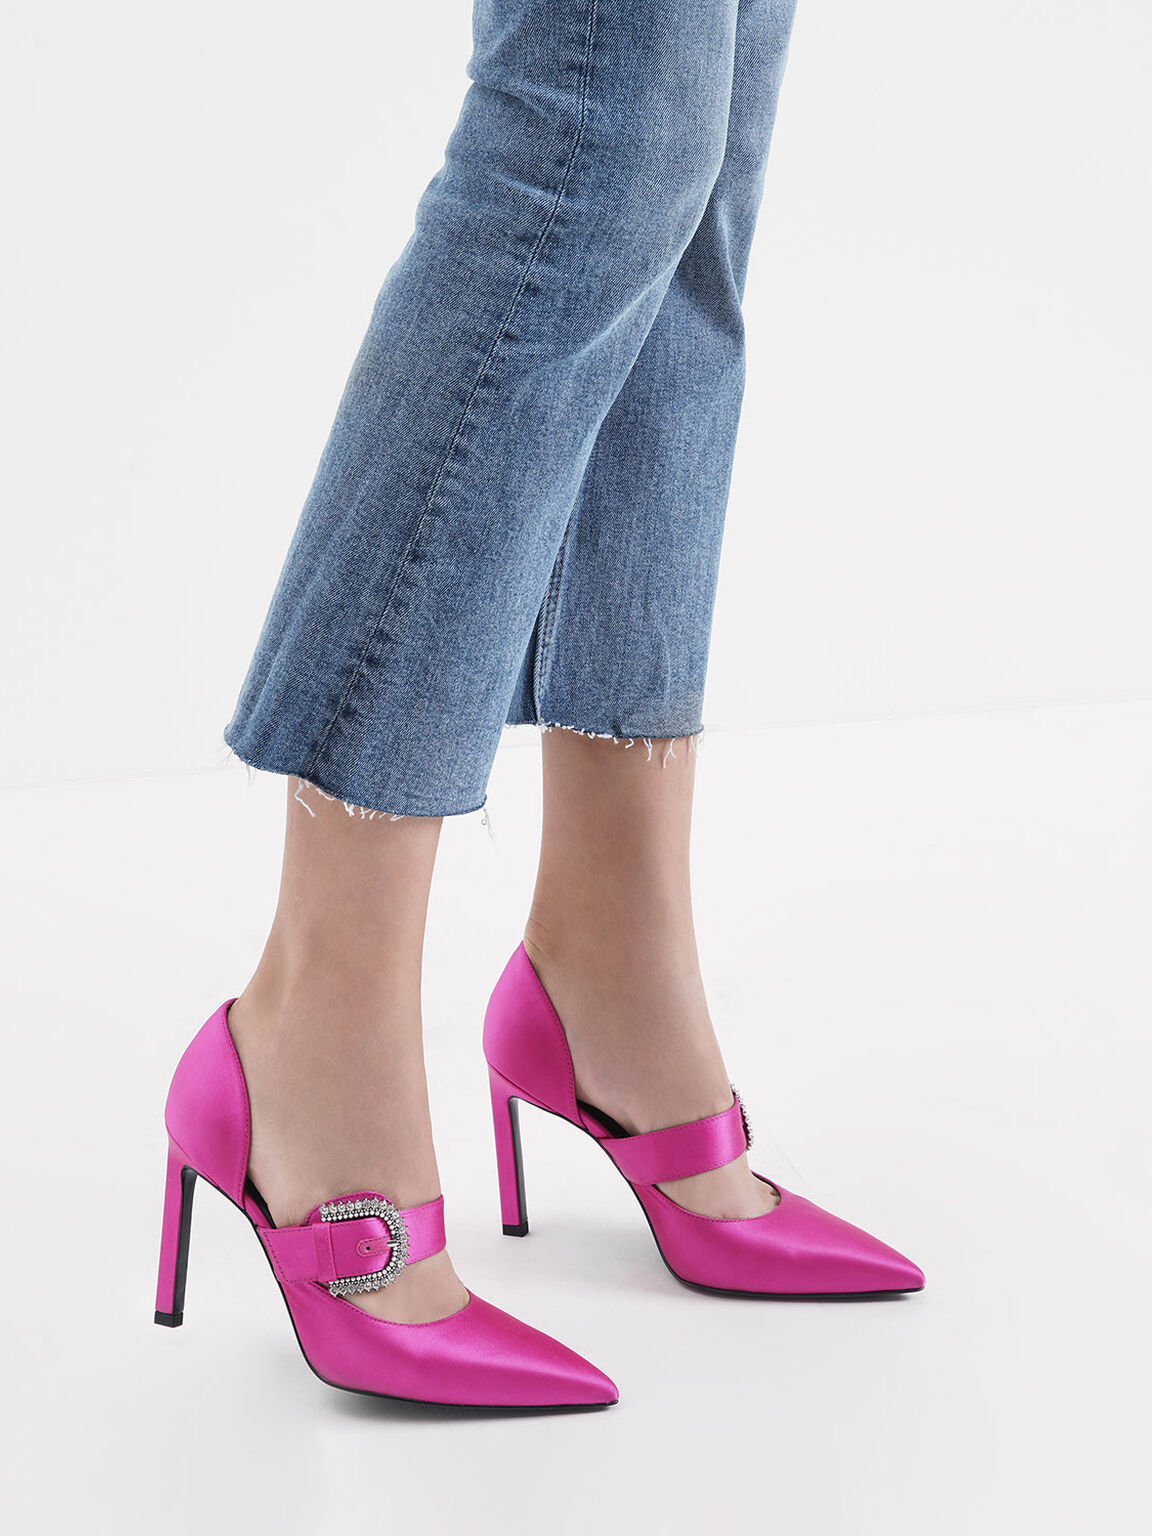 Satin Embellished Buckle Mary Jane Heels, Fuchsia, hi-res